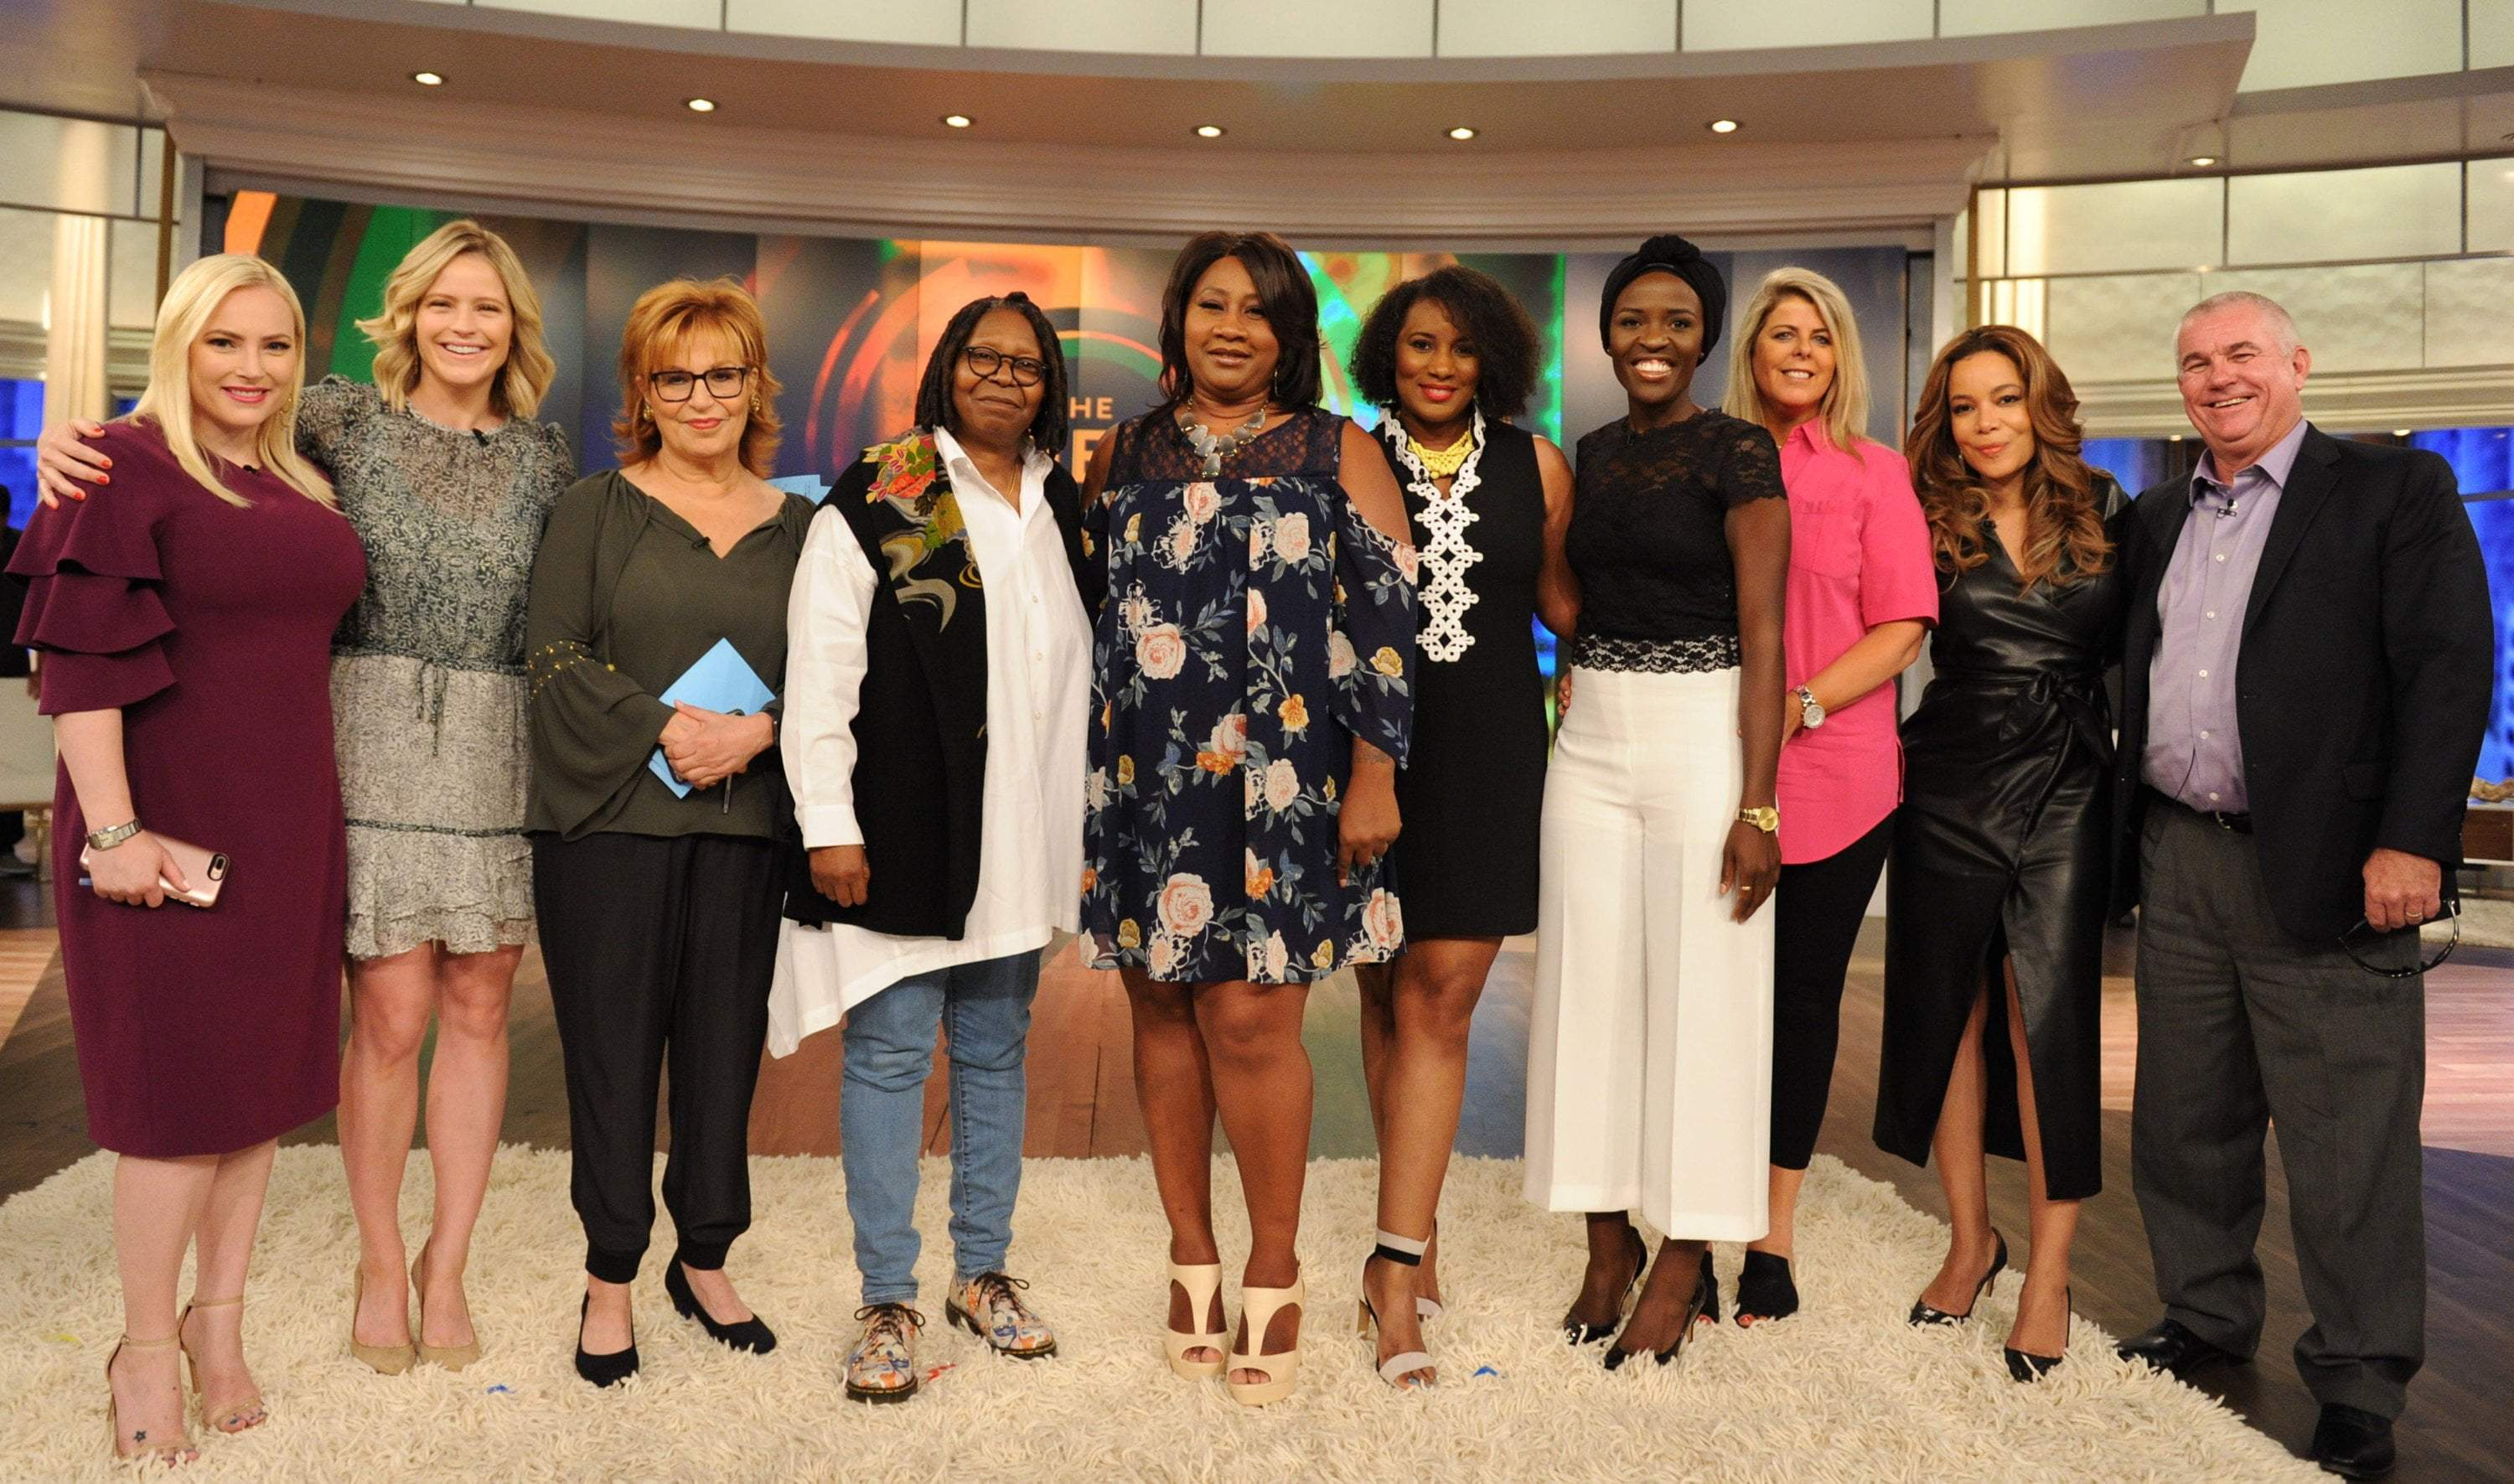 Grace Eleyae and Whoopi Goldberg give woman the surprise of a lifetime.